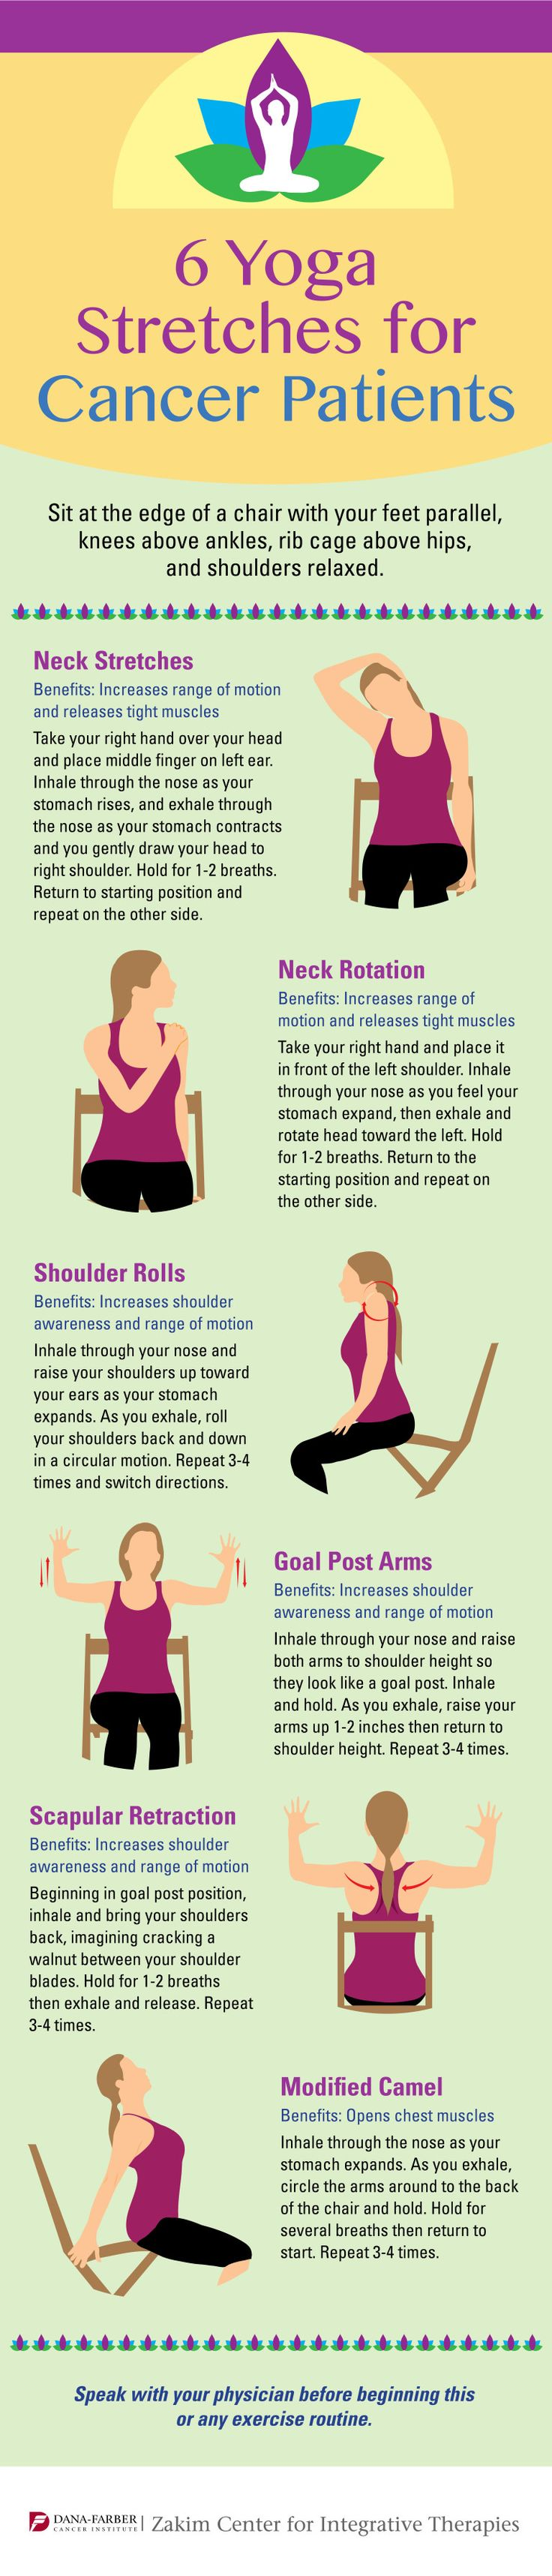 6 Yoga Stretches for Cancer Patients